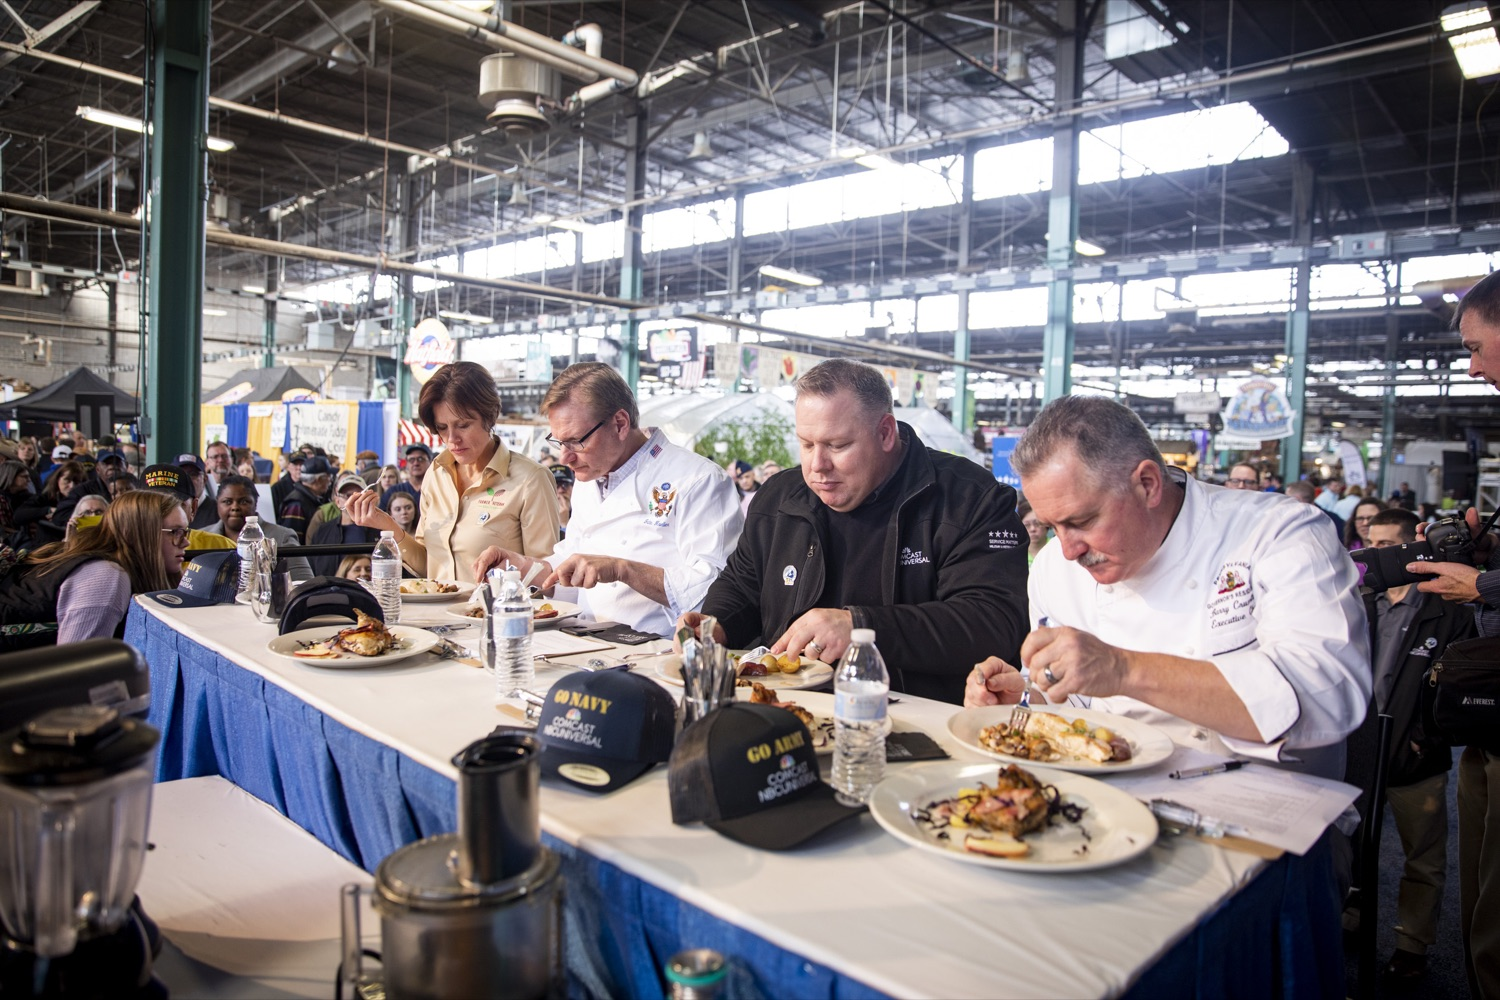 """<a href=""""http://filesource.abacast.com/commonwealthofpa/photo/17651_AGRIC_ARMY_NAVY_COOKOFF_CZ_14.jpg"""" target=""""_blank"""">⇣Download Photo<br></a>(From Left to Right) Judges Sarah Dachos, John Moeller, Gregory Magee Jr., and Barry Crumlich taste dishes from competitors at the 2020 Army vs. Navy Cook-Off in Harrisburg on January 9, 2020."""